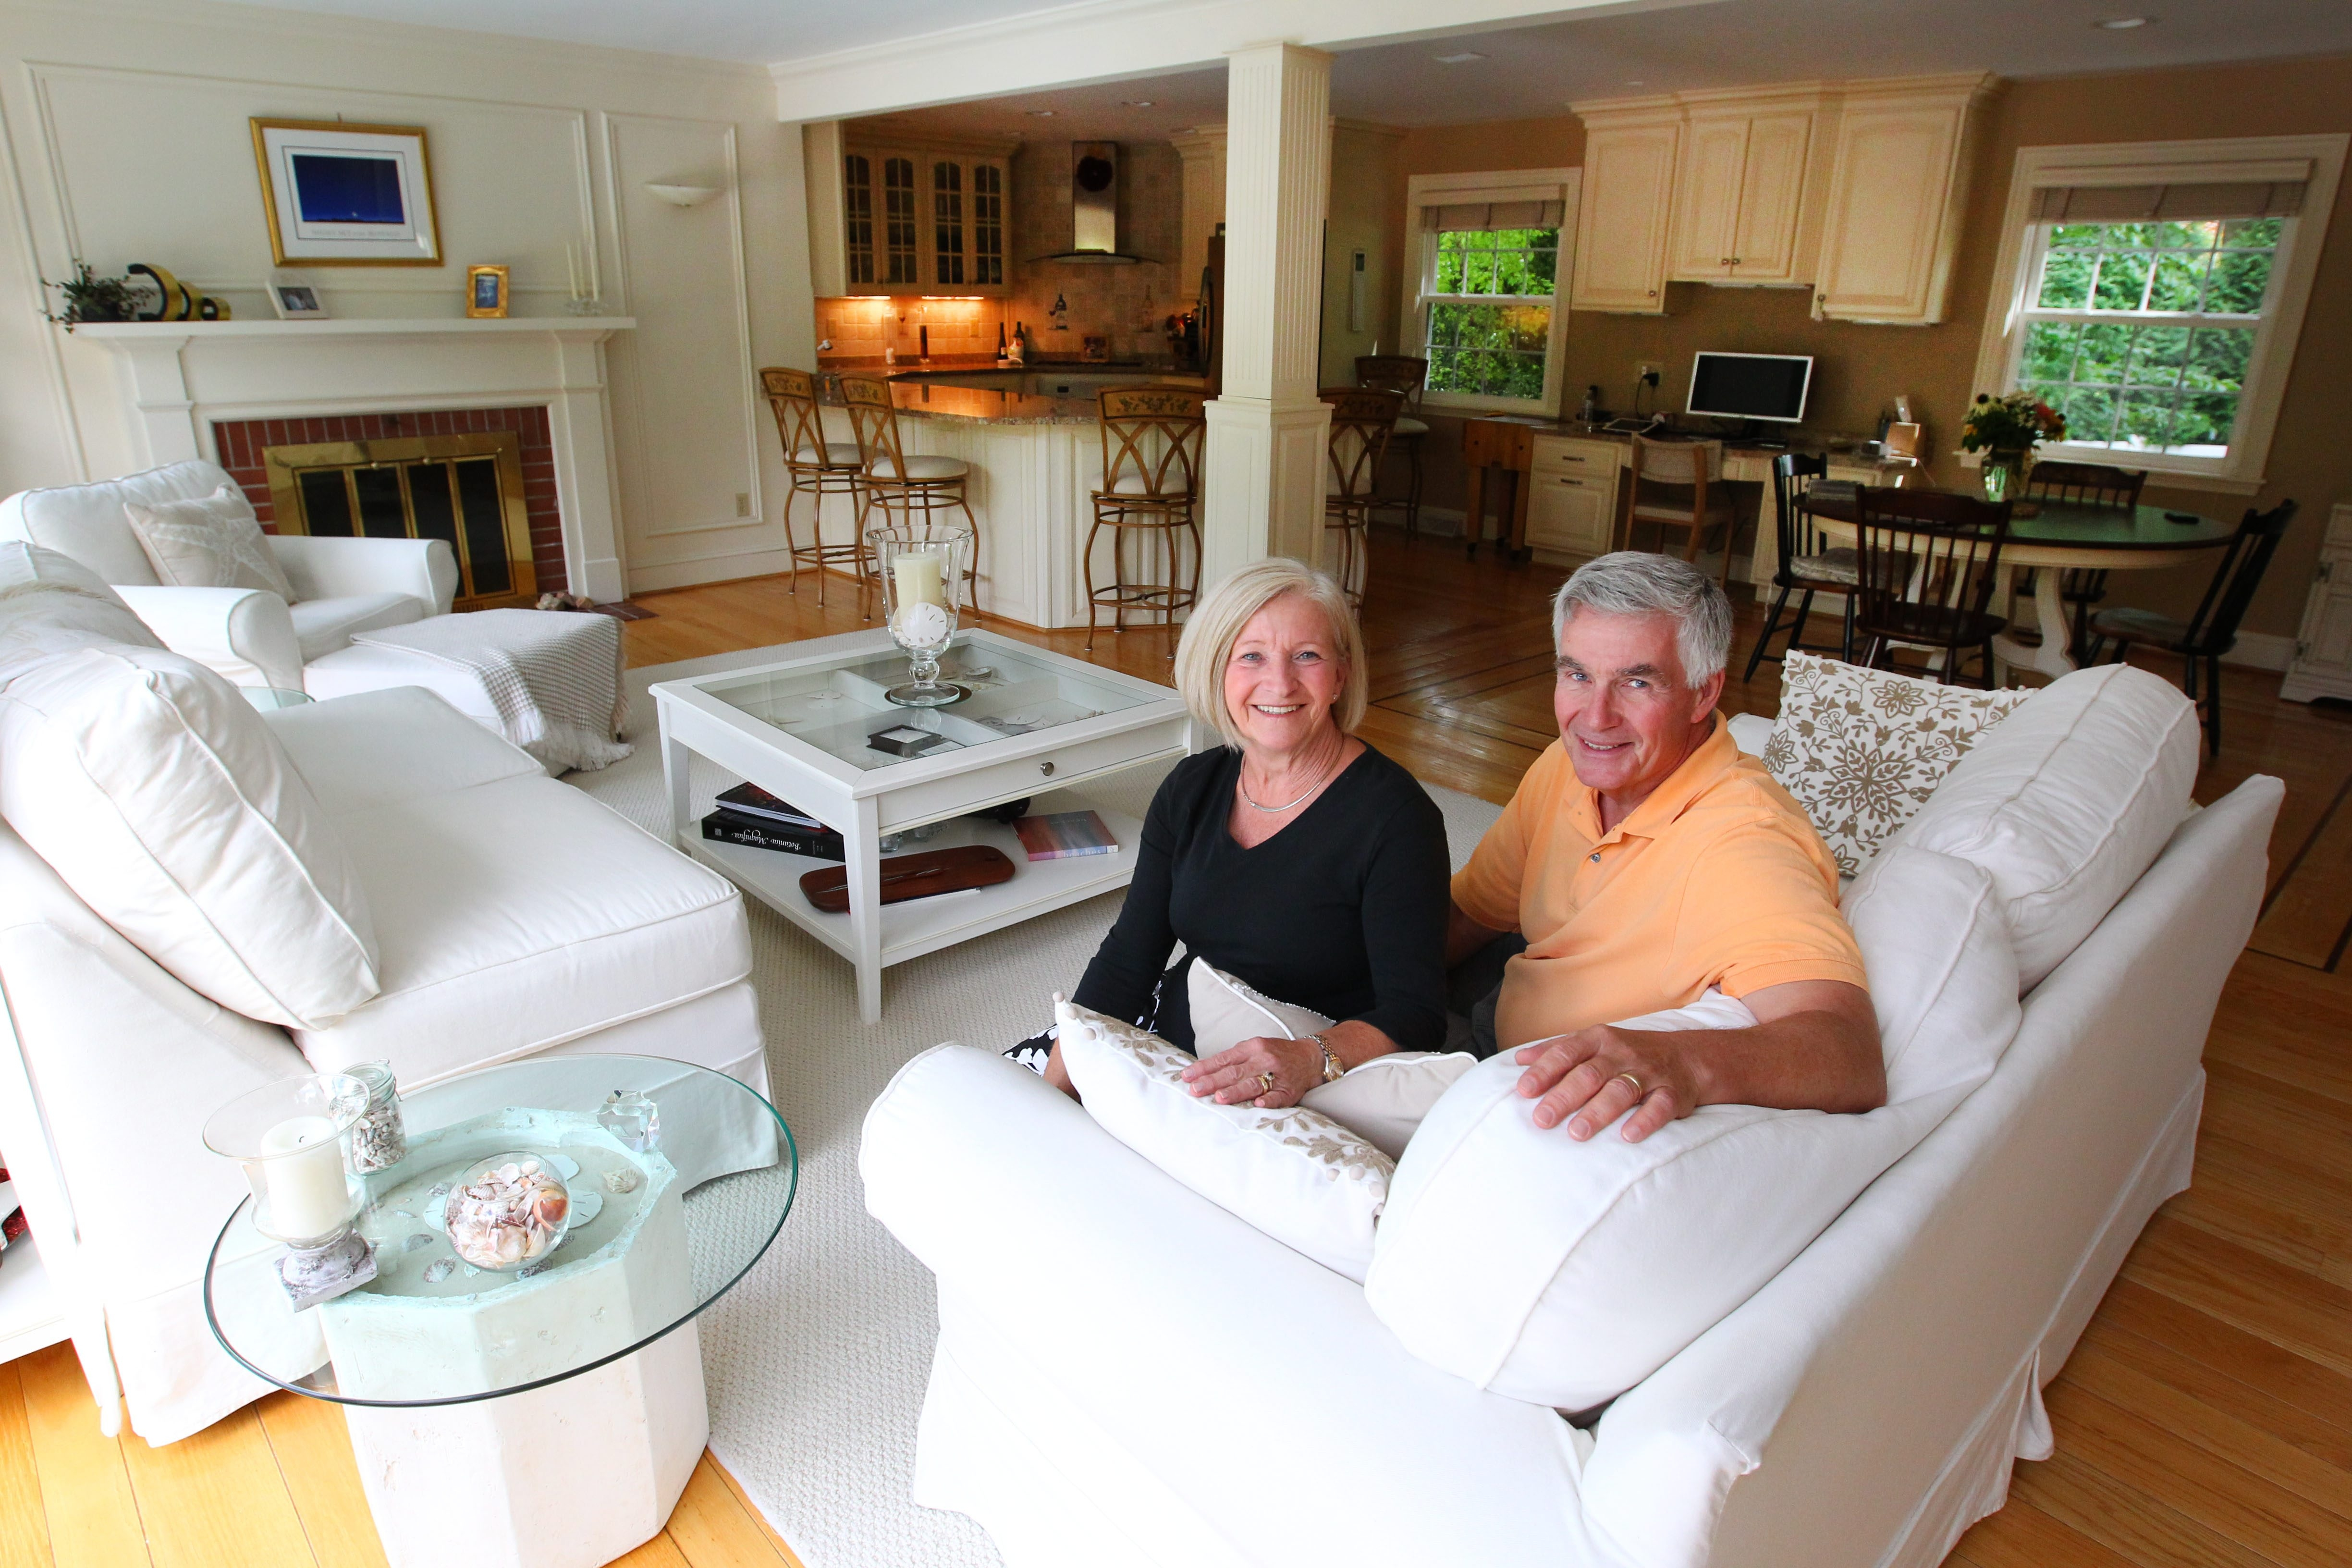 Open concept: Marcia and Nick Roth take a seat in the living room that leads to the kitchen they renovated about 10 years ago. Newer still is the half bath off the family room. A wine-themed mural in the kitchen, center, and a shadow box coffee table in the living room add personal touches.